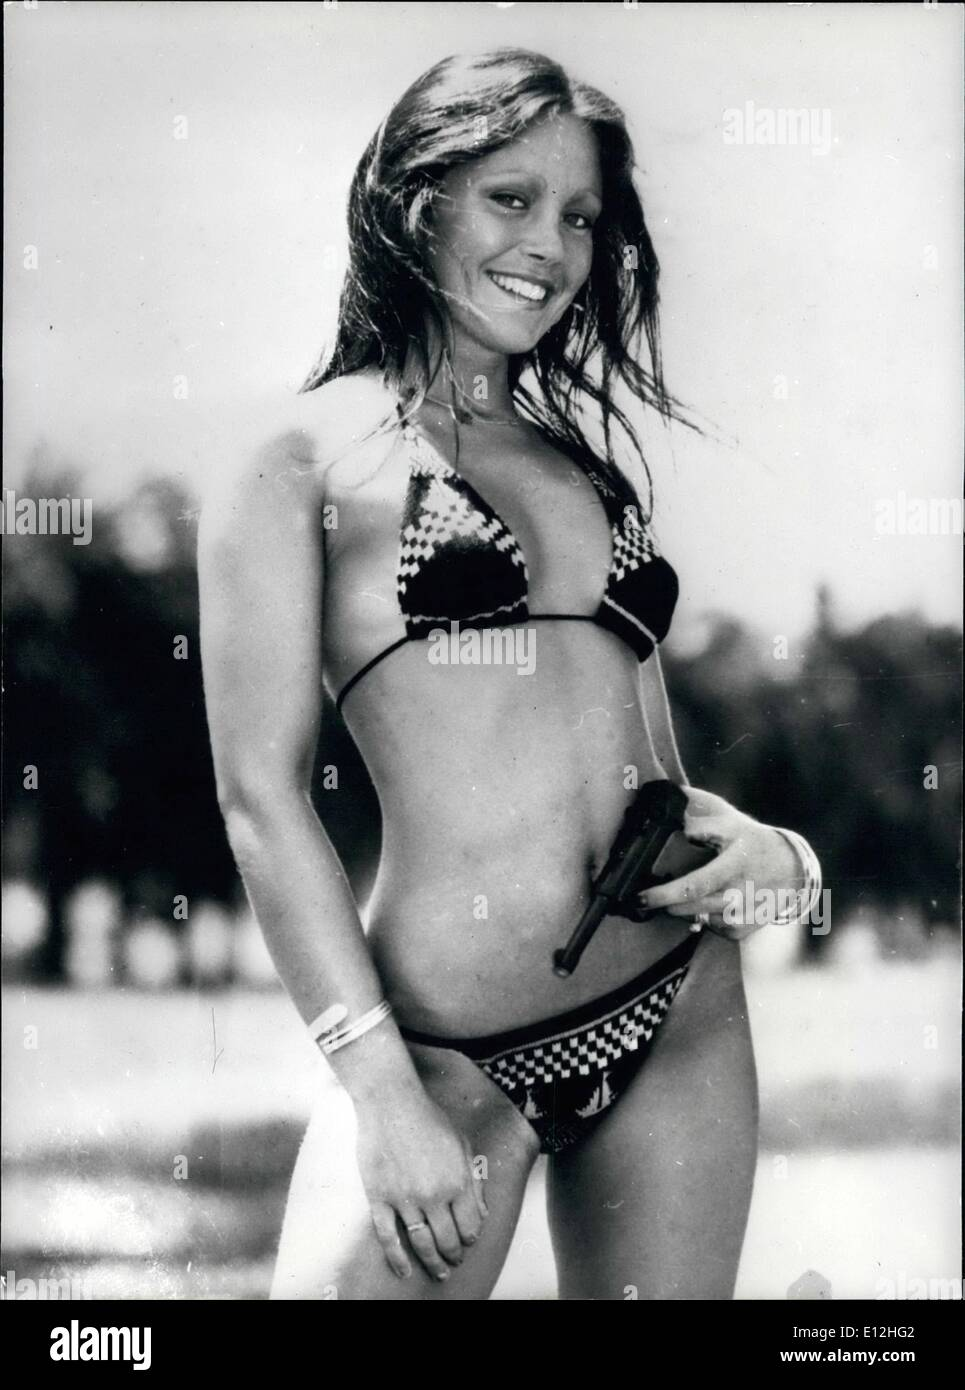 Feb. 24, 2012 - Janice Got Her Cue: A Sydney Australia newspaper is searching for a new Bond Girl, Janice Reely is one of four finalists, of which the winner will be flown to a film location in either Europe or South America as a special guest of United Artists. - Stock Image